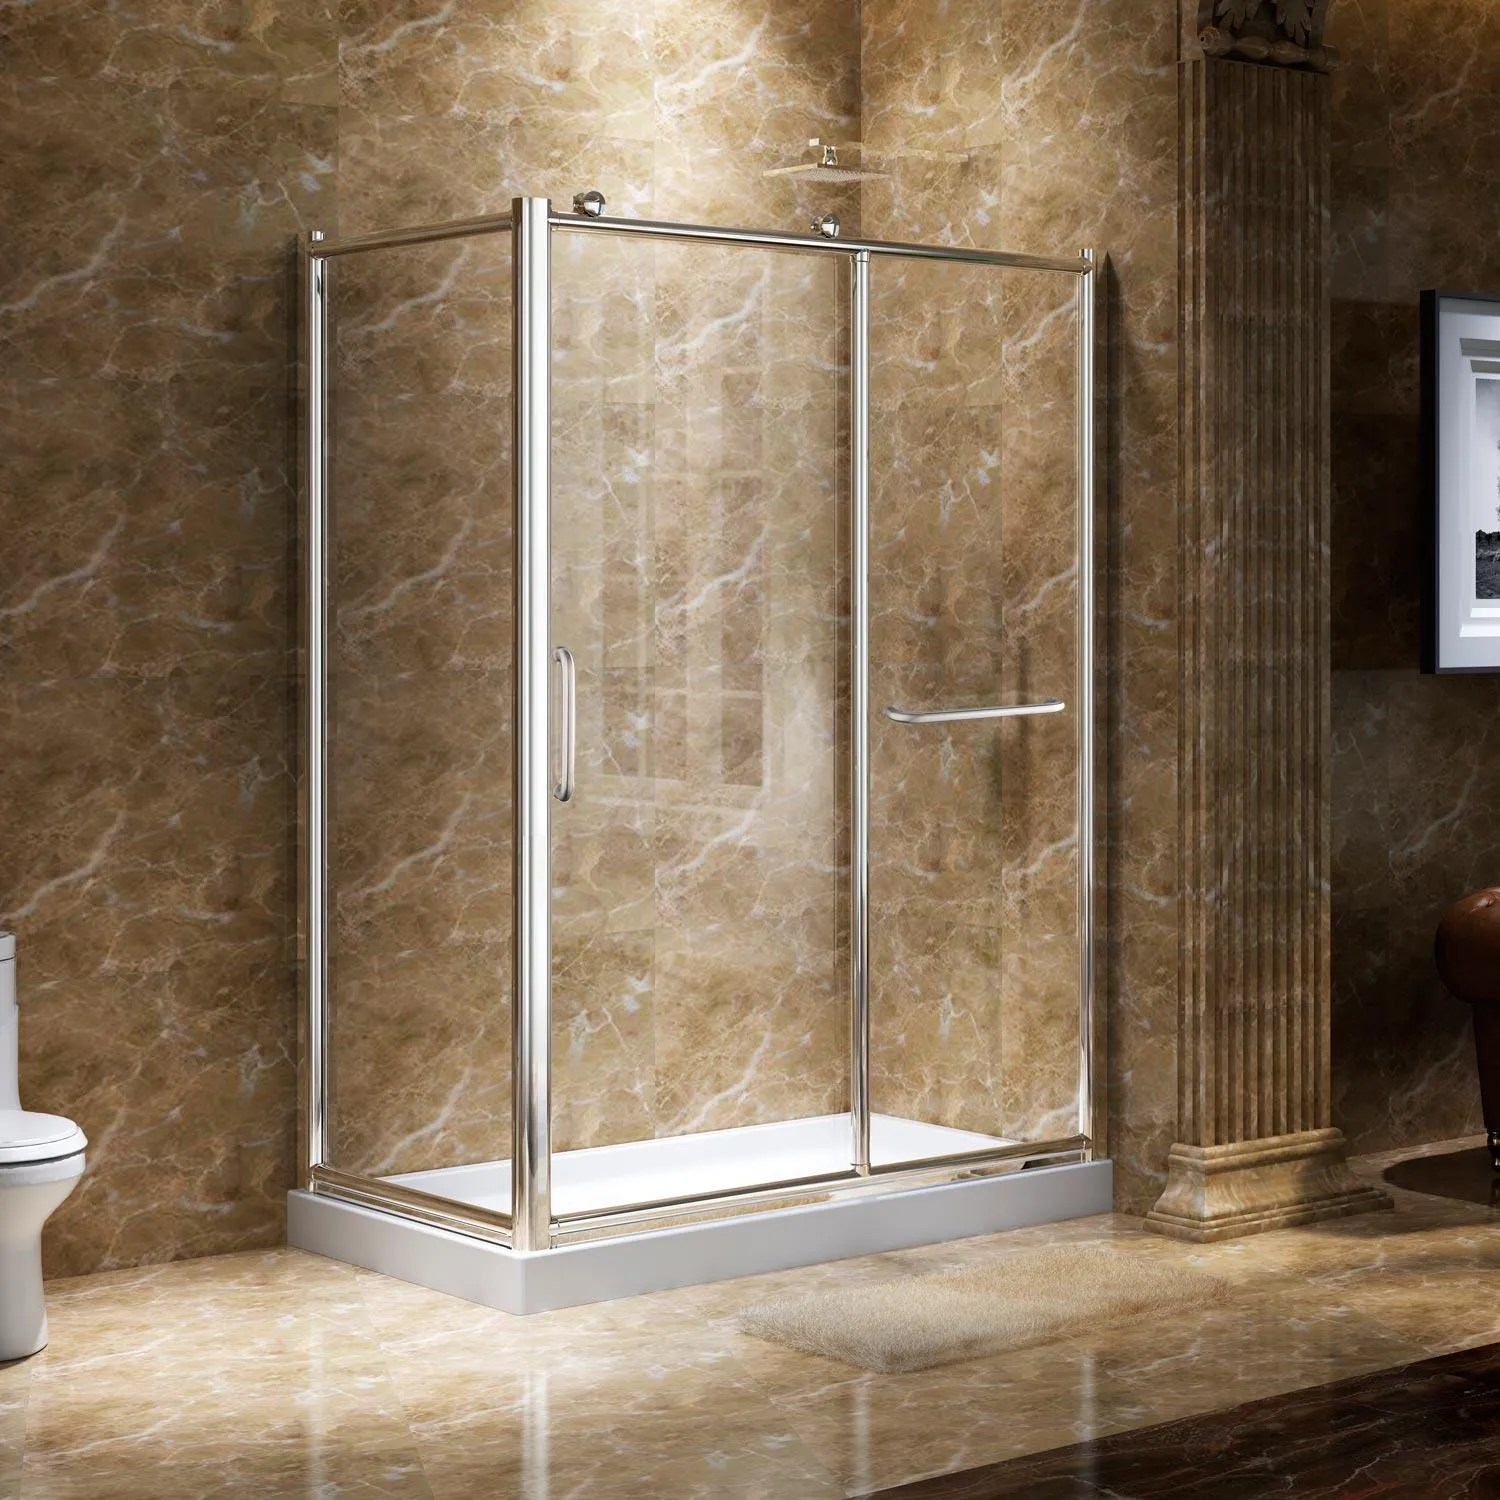 45 X 31 Alva Corner Shower Enclosure With Sliding Door